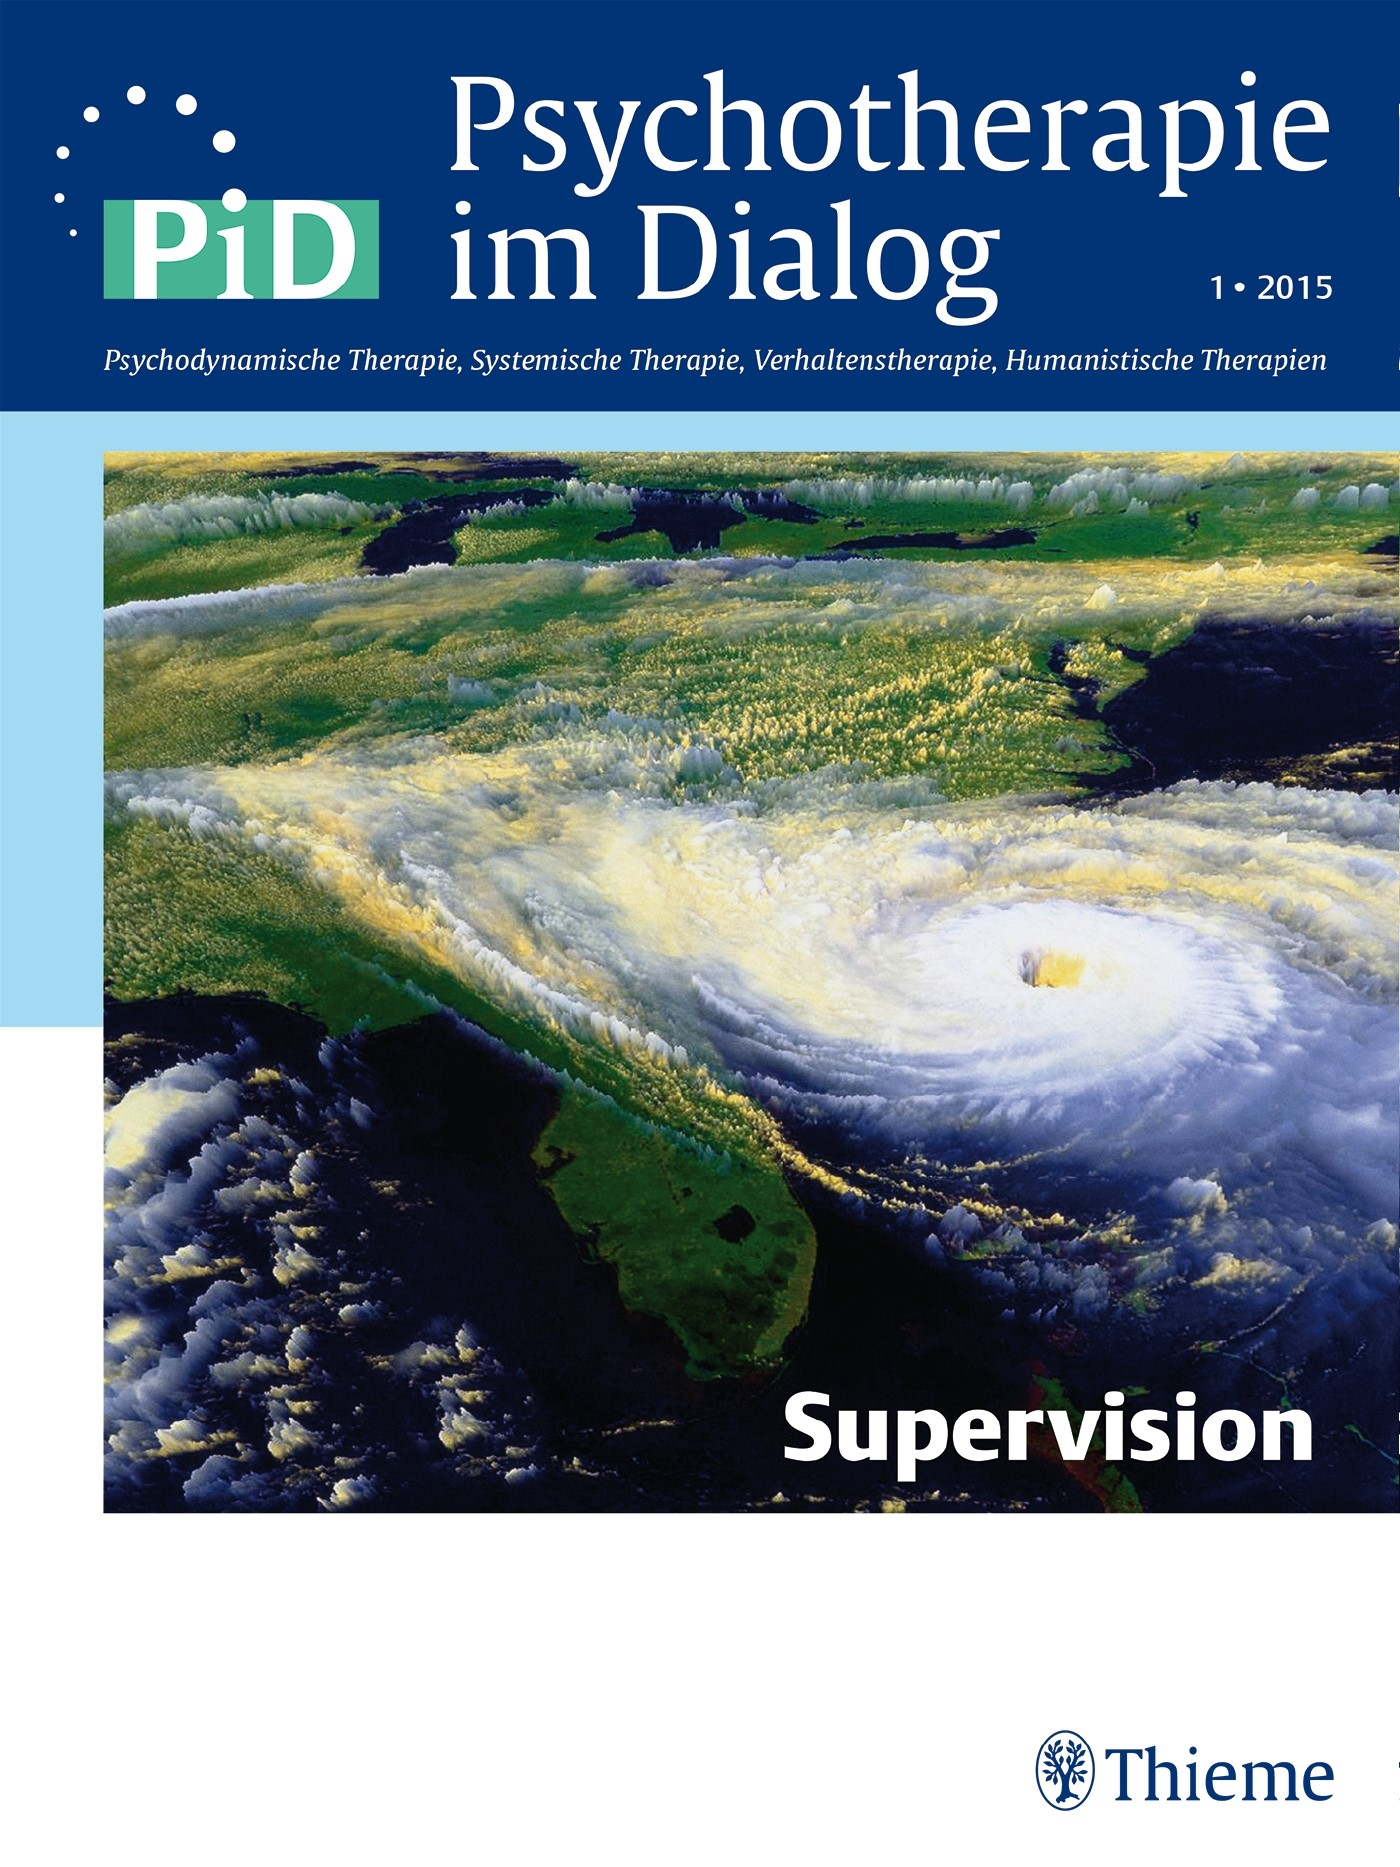 Psychotherapie im Dialog - Supervision | Borcsa / Wittich, 2015 | Buch (Cover)